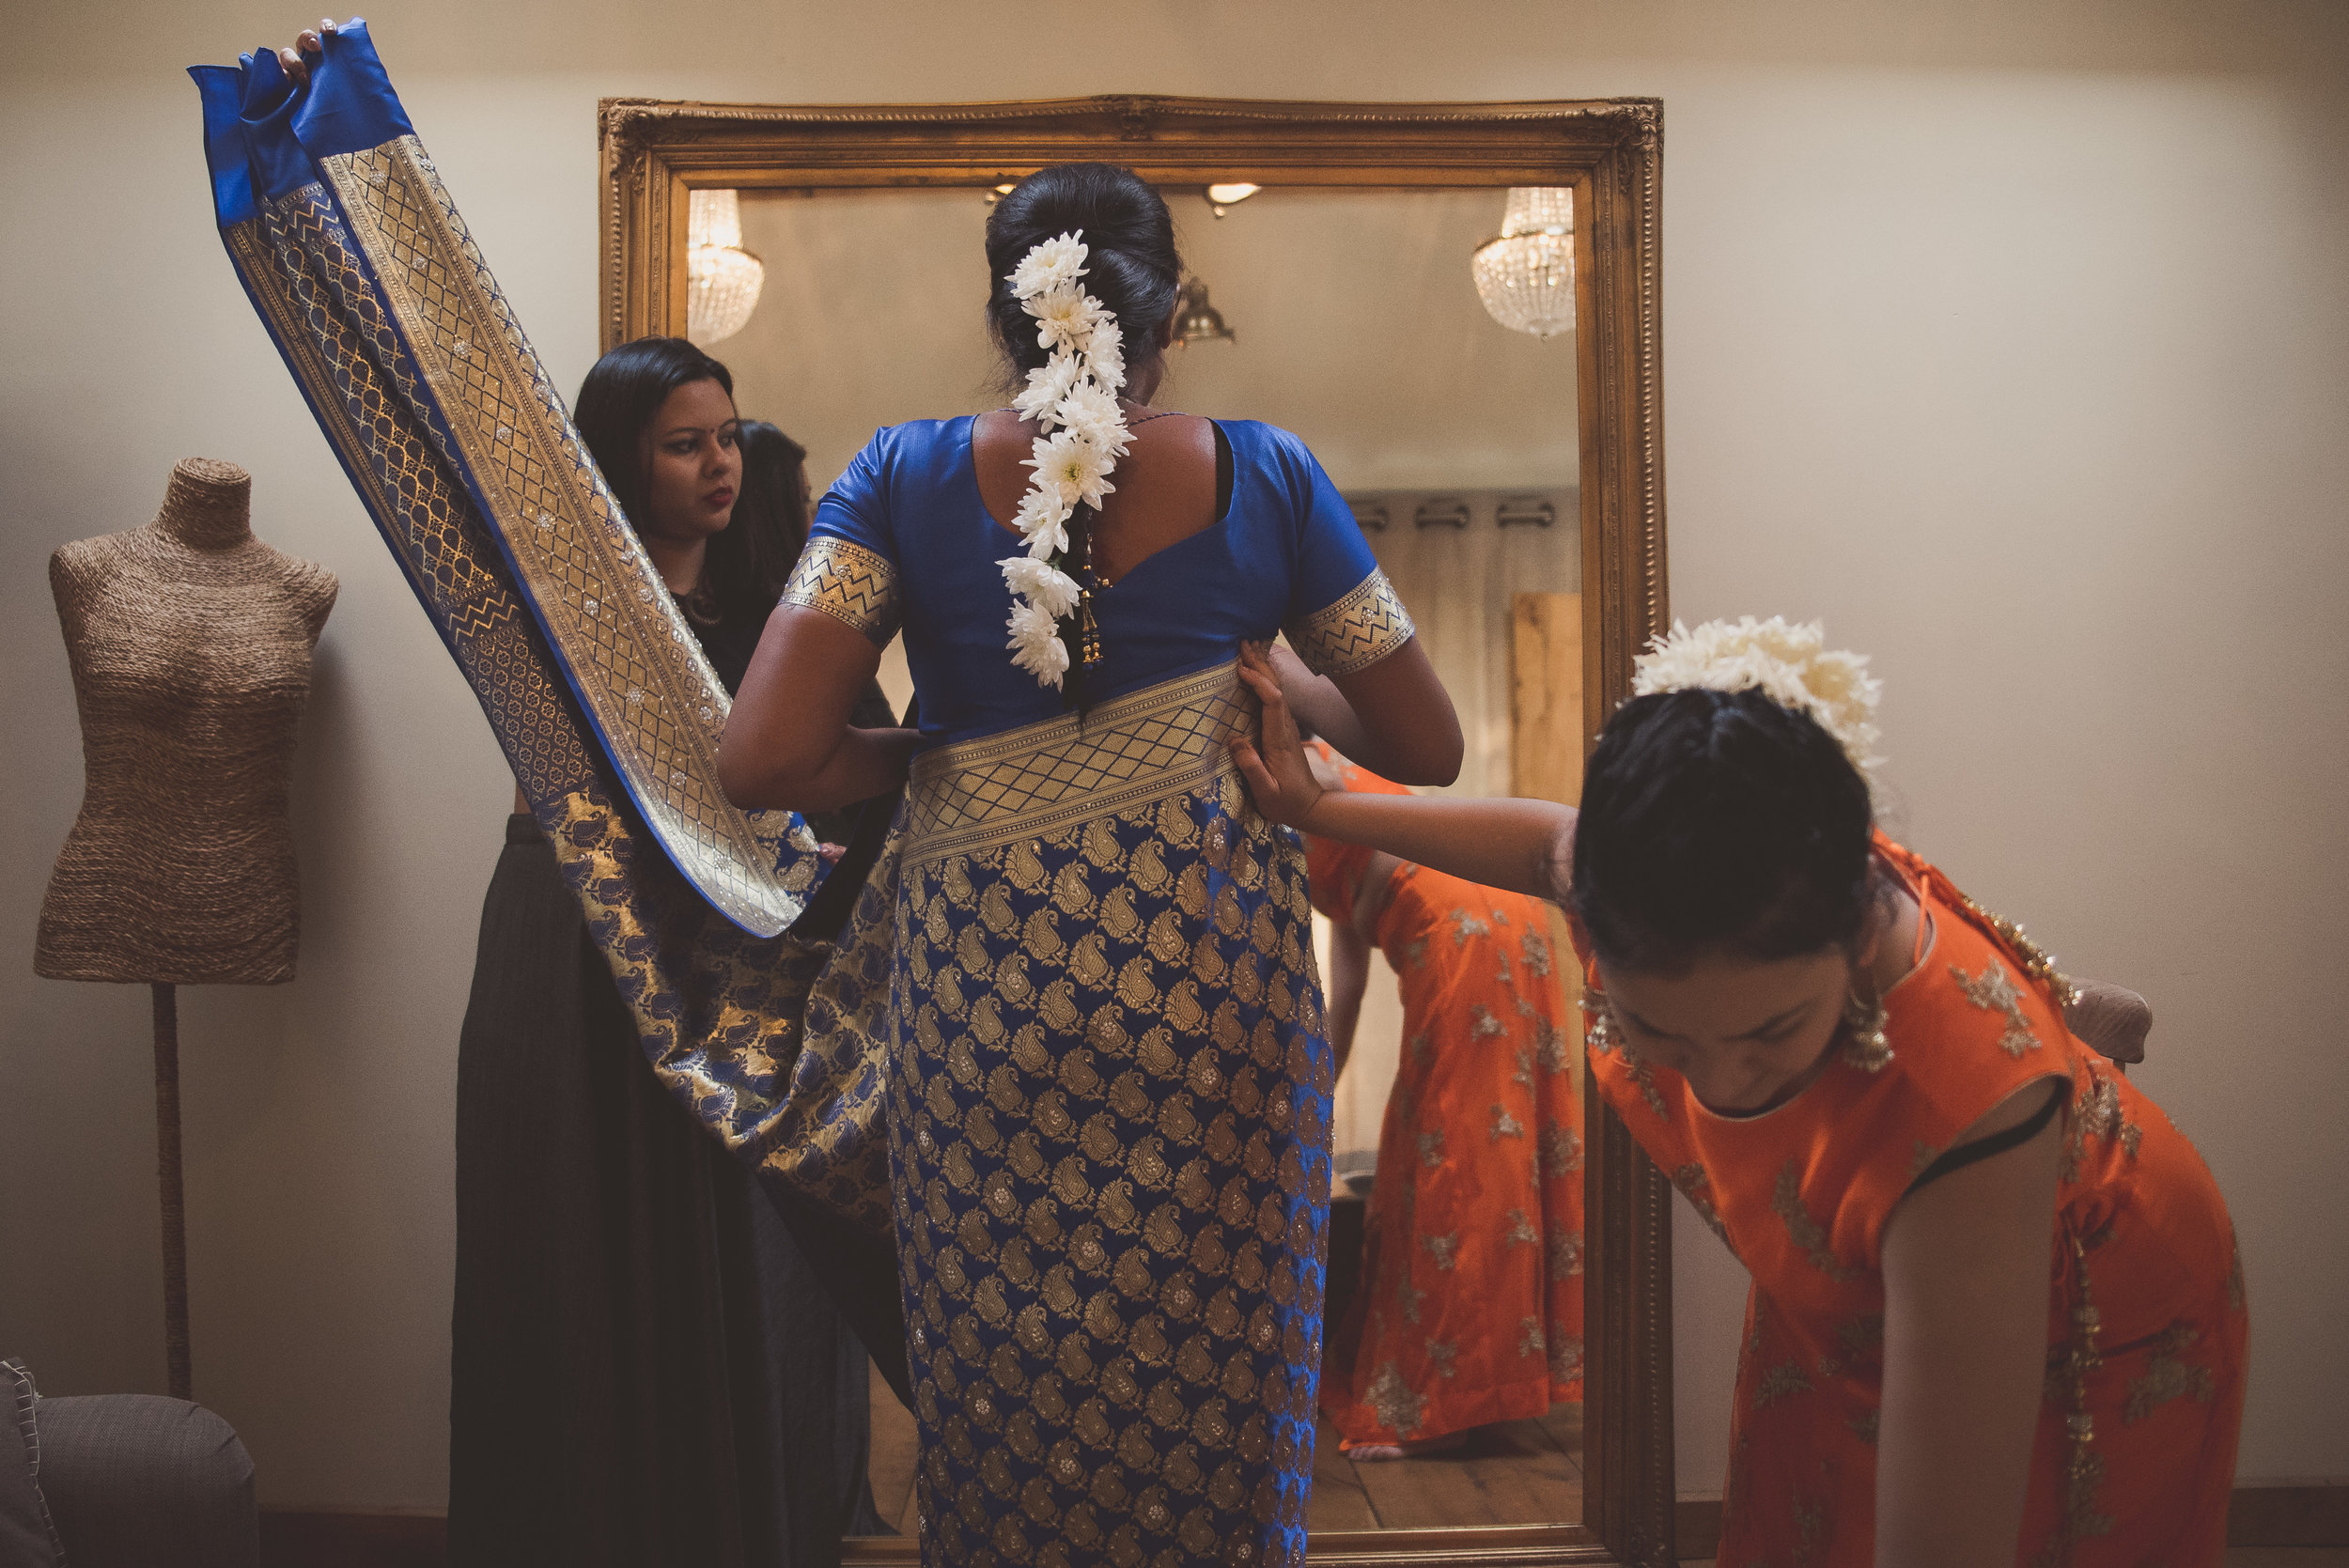 Hindu Bride at The Tythe Barn